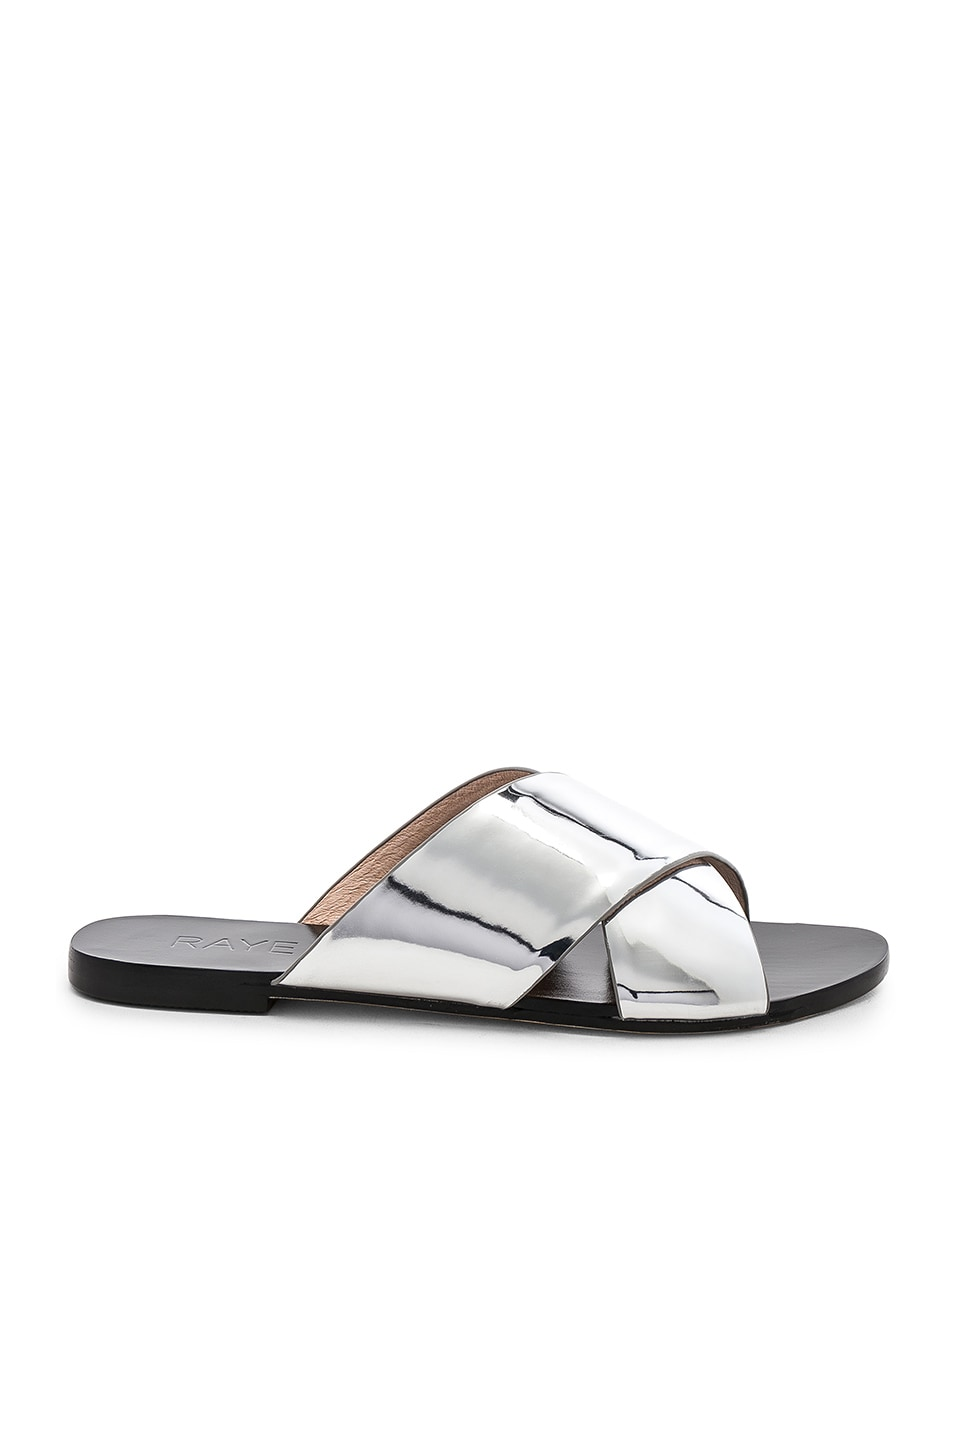 RAYE Atmore Slide in Silver